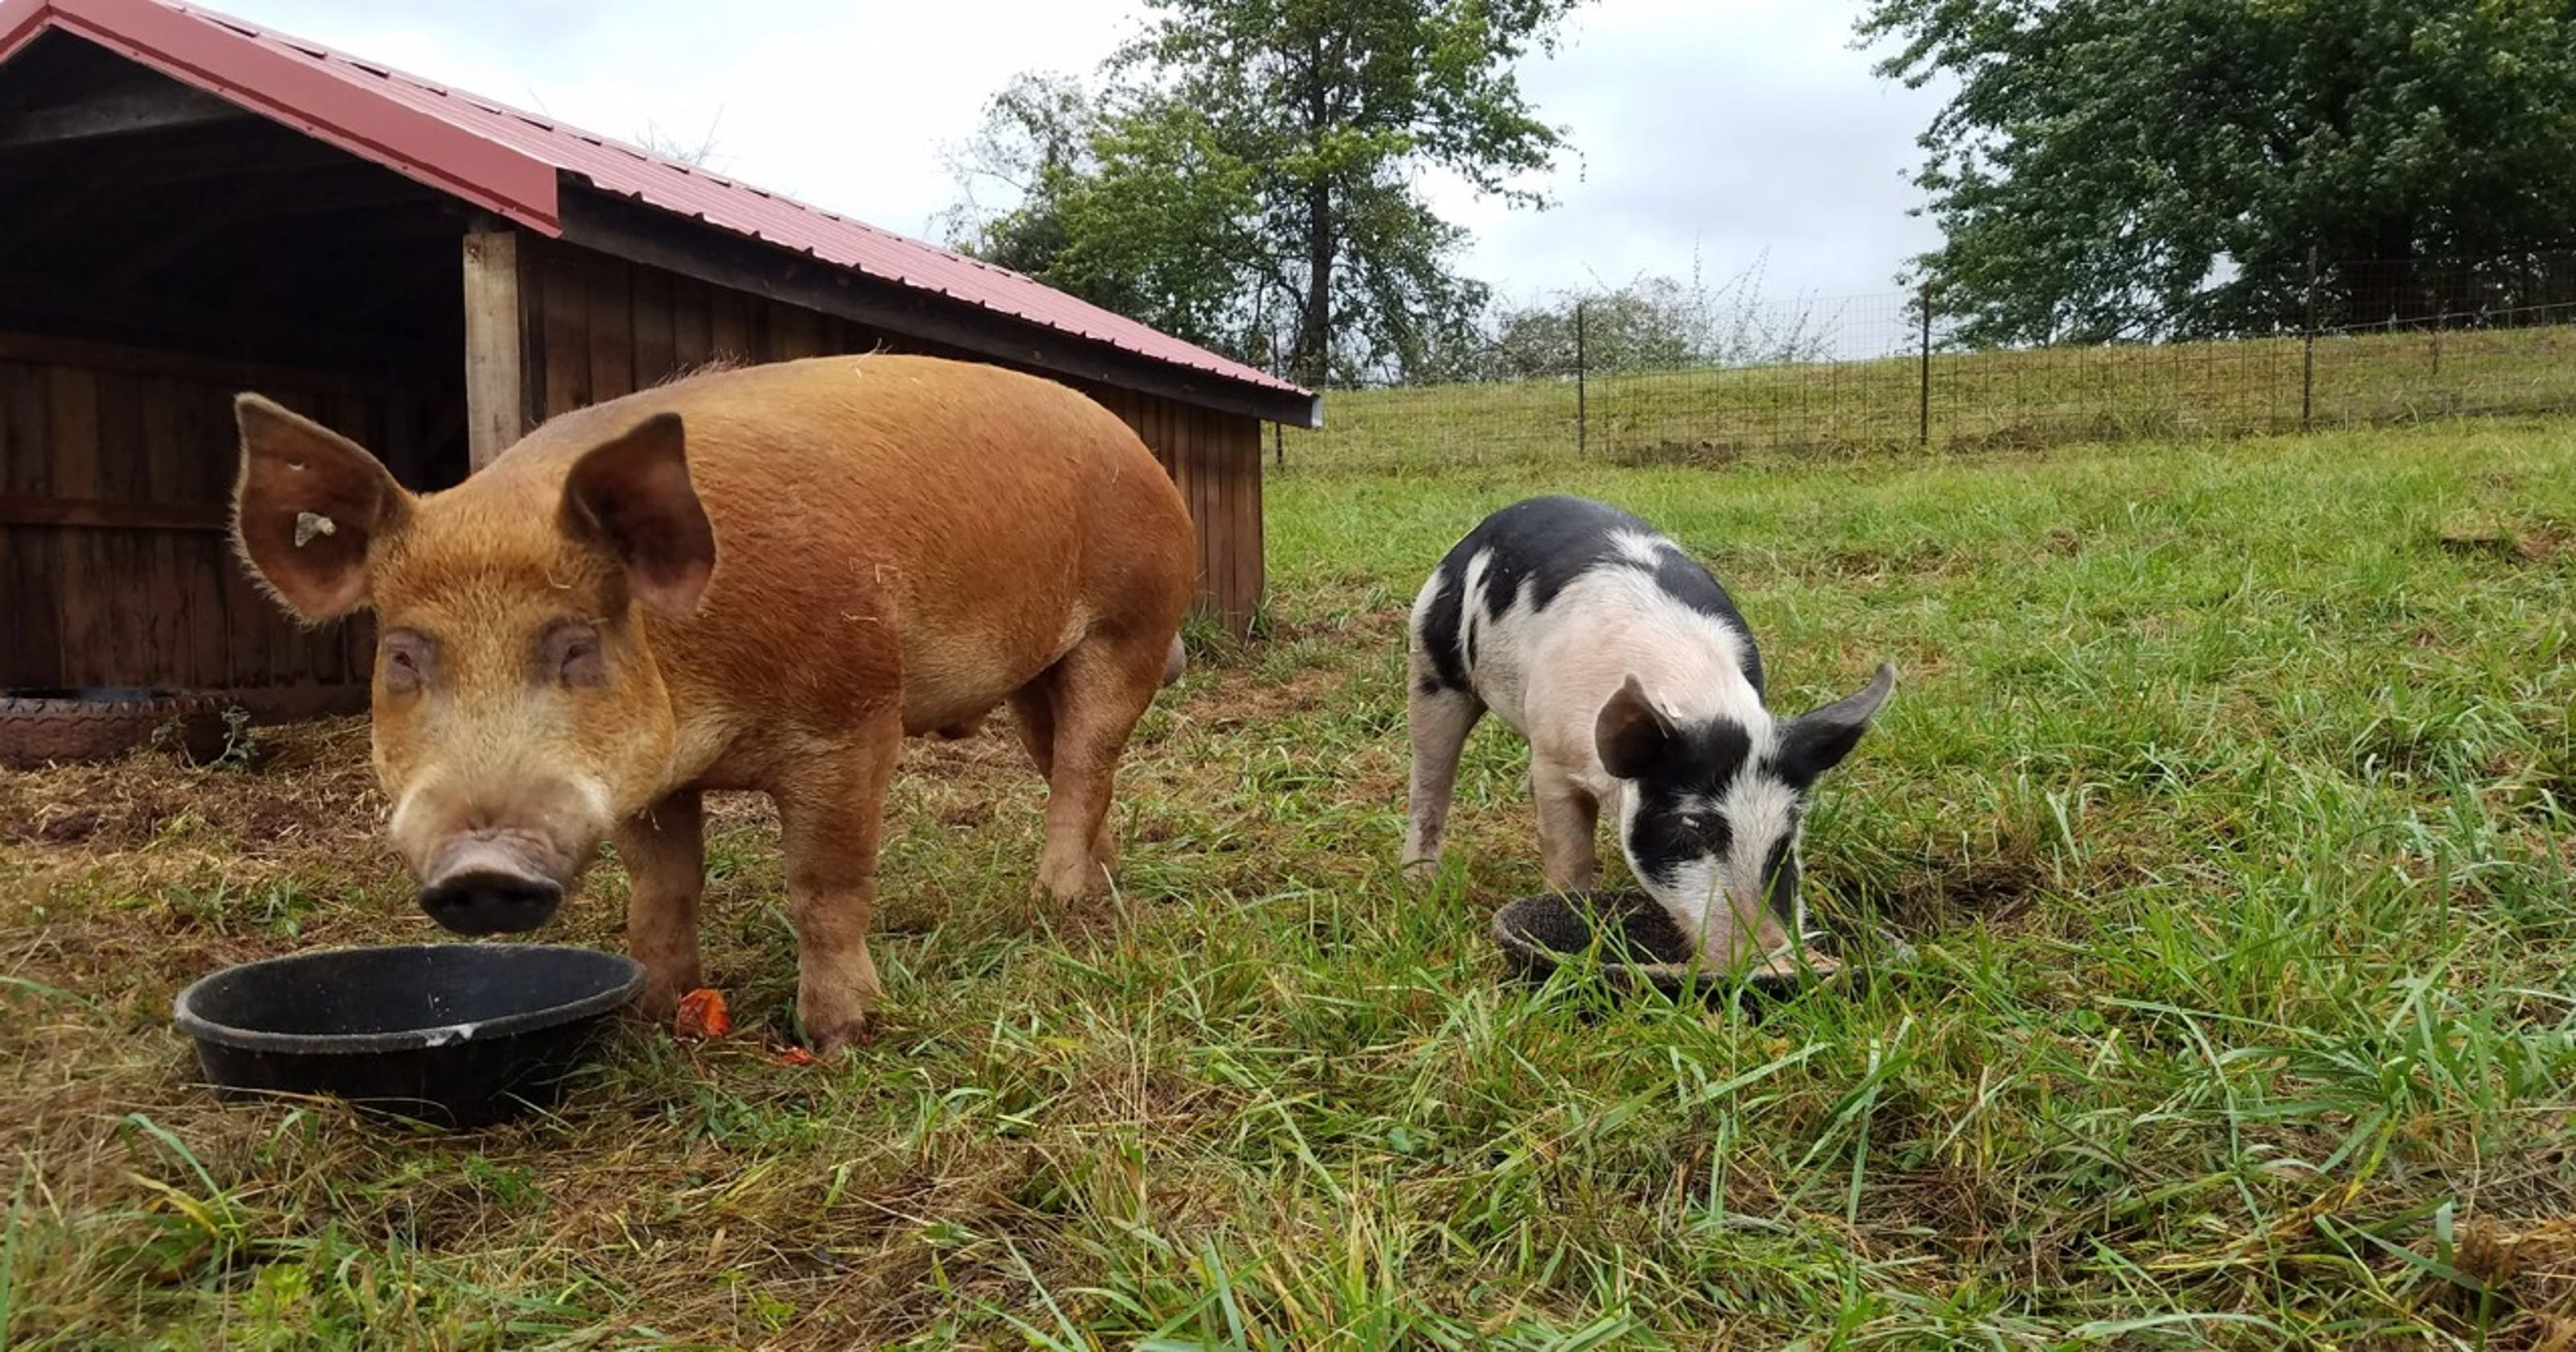 Safe Haven Farm Sanctuary in Poughquag works to rescue pair of pigs